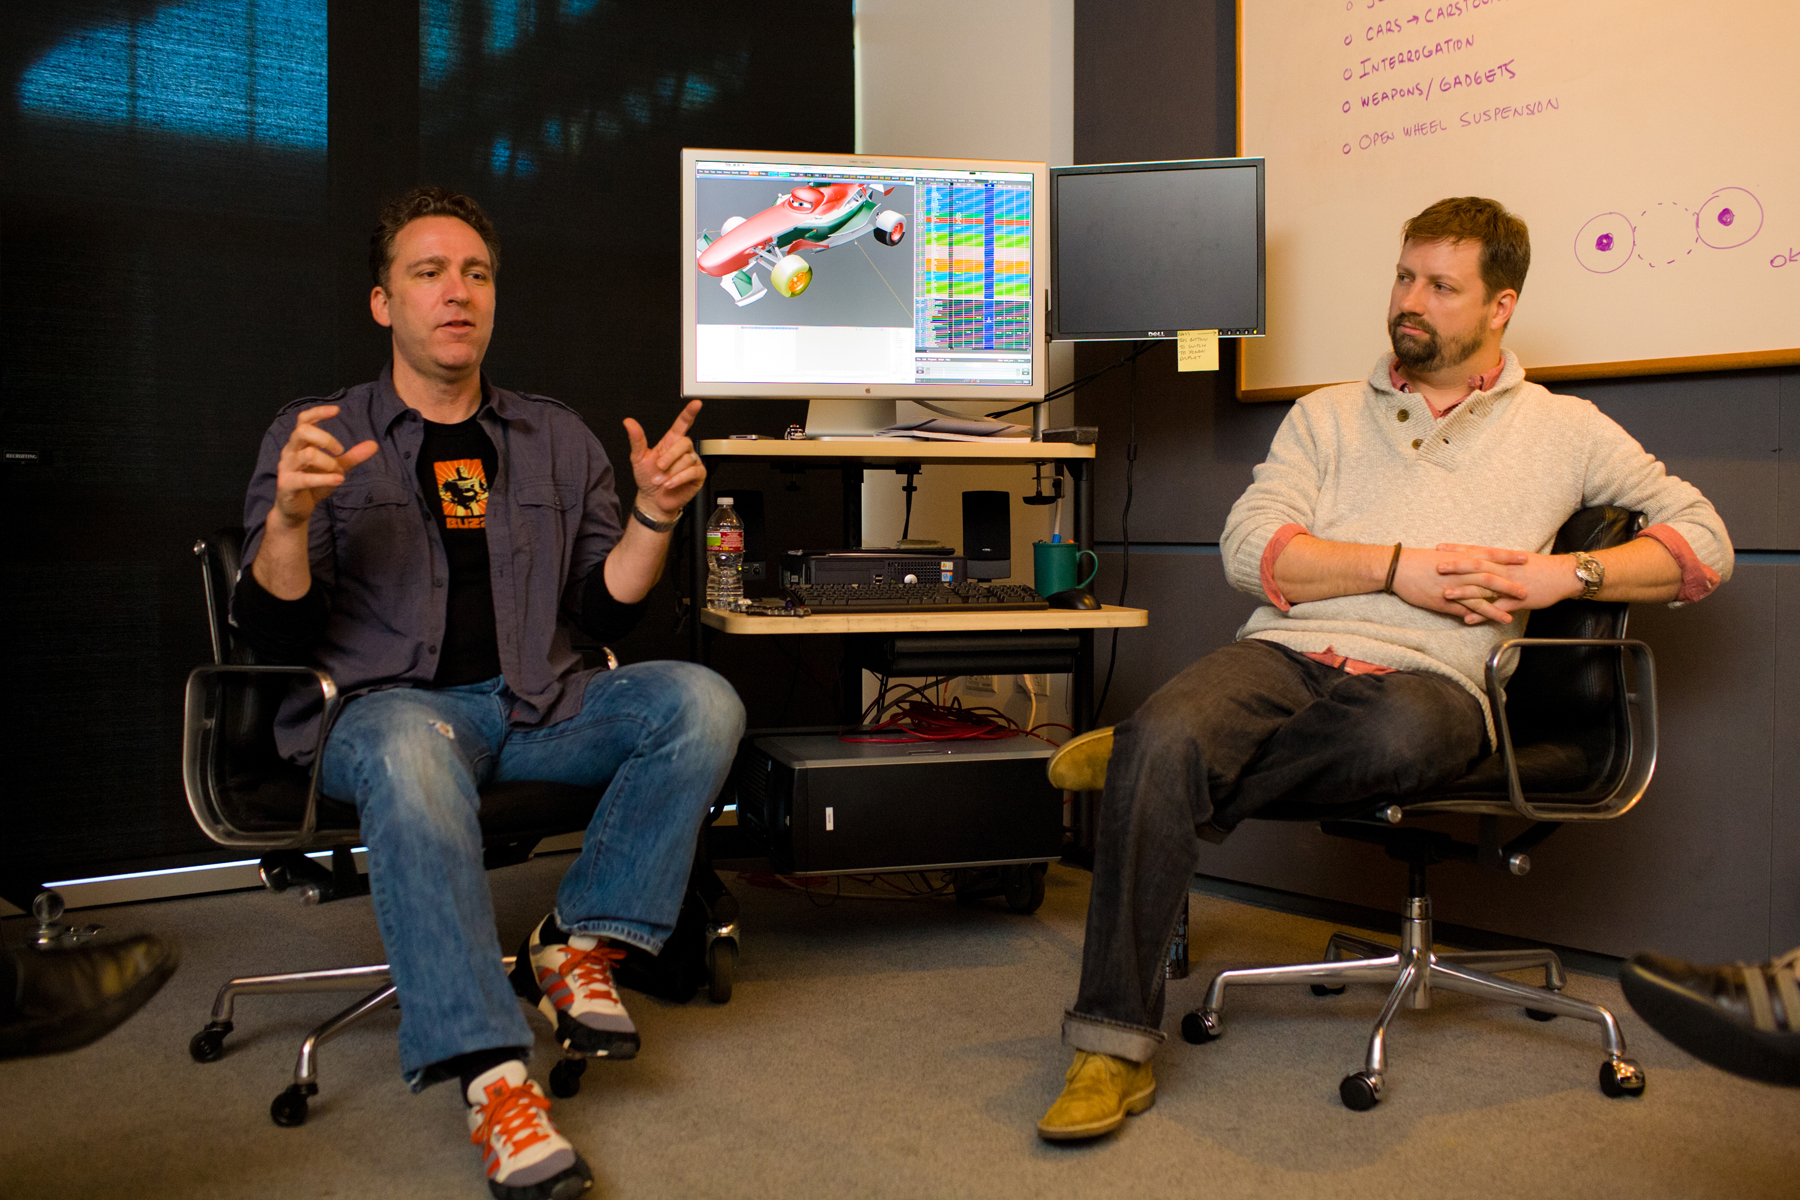 Exclusive: Cars 2 Supervising Animators Shawn Krause and Dave Mullins Talk Pixar Animation (Part 1)